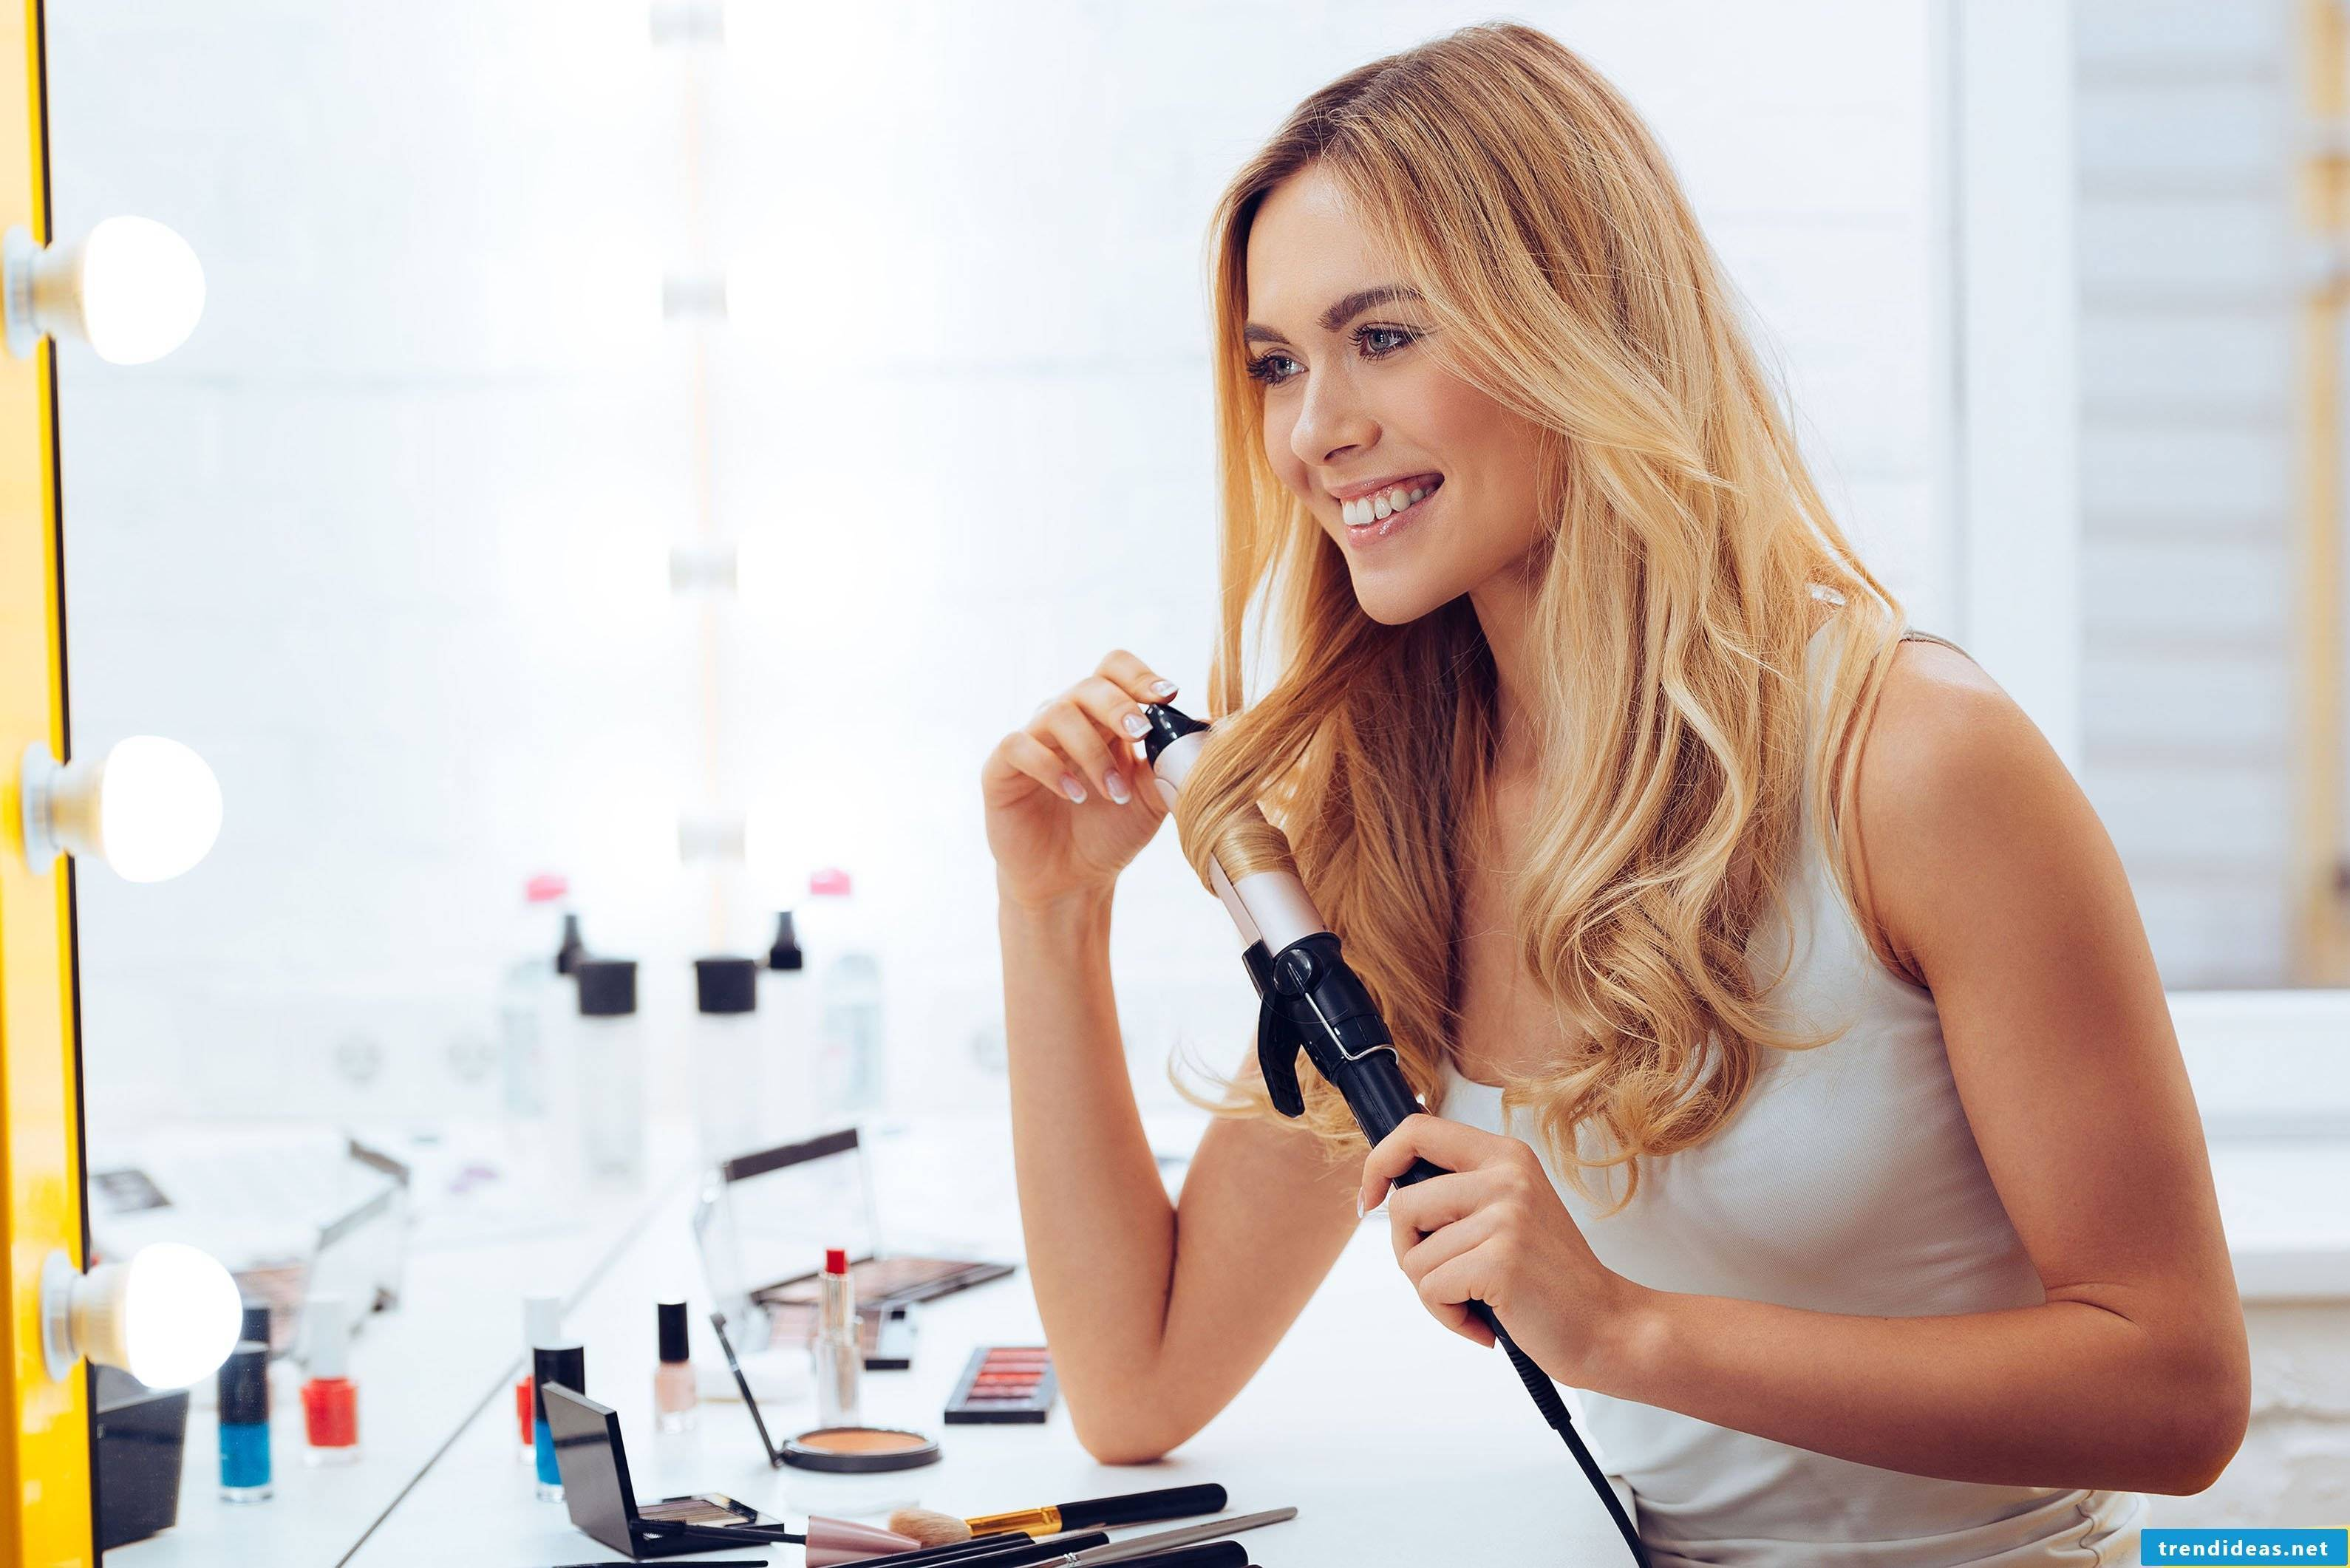 Make curls yourself with curling iron